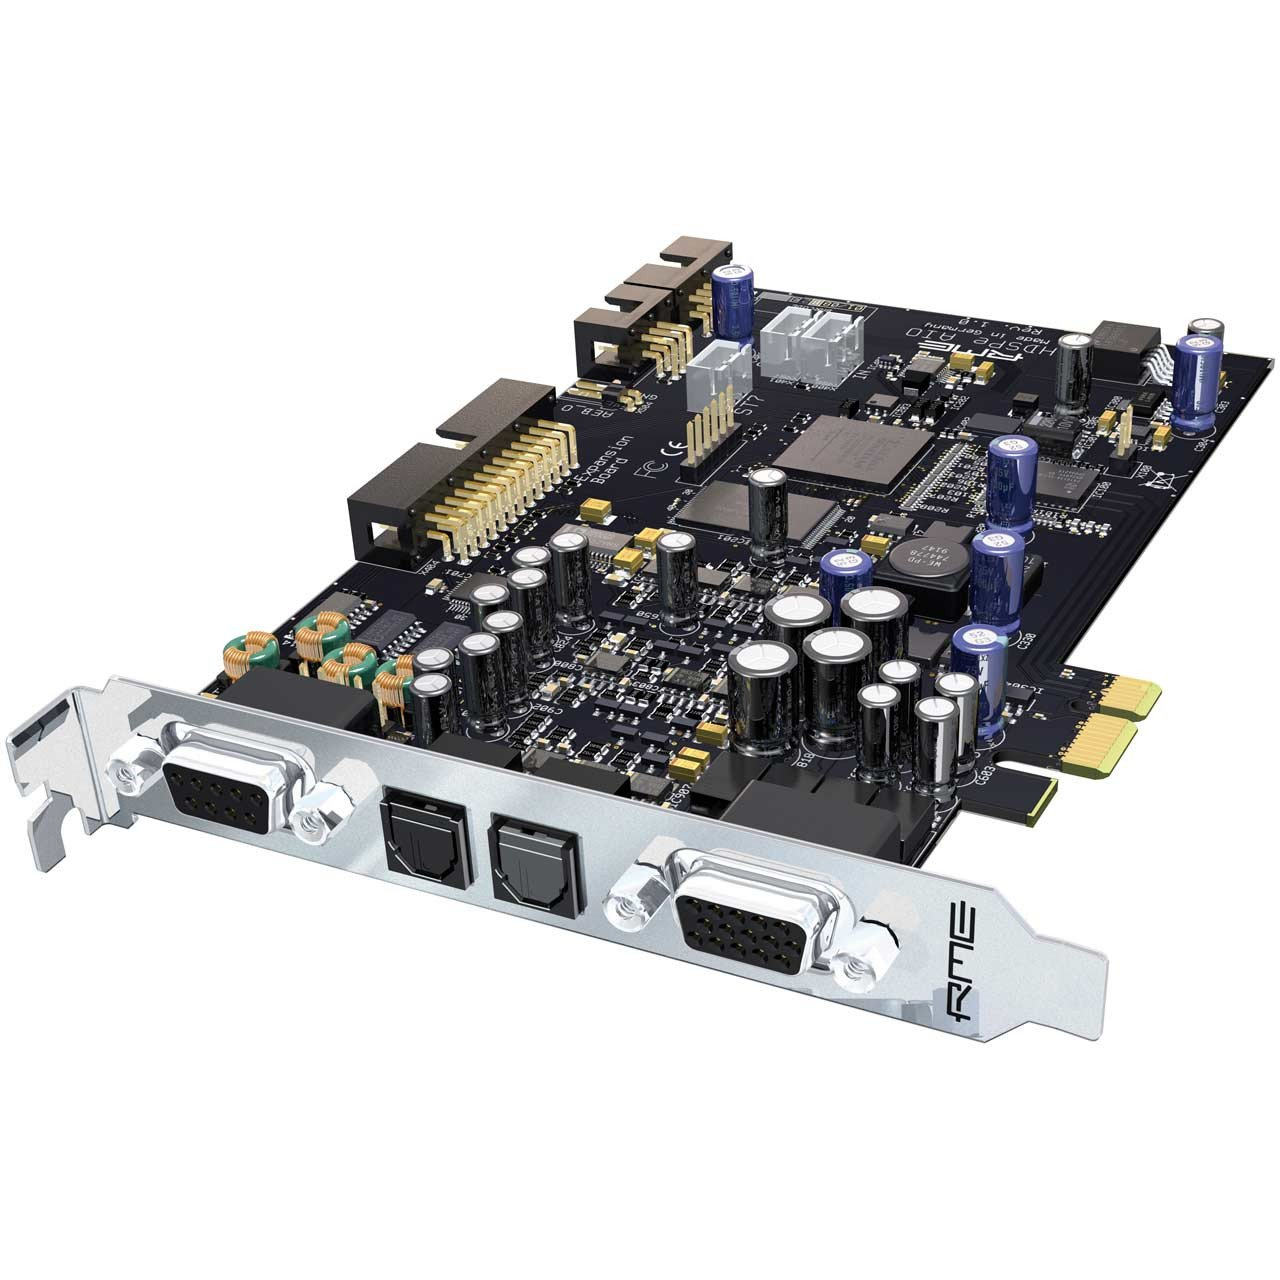 PCI/PCIe Audio Interfaces - RME HDSPe AIO 38-Channel 24-bit/192kHz PCI Express Card